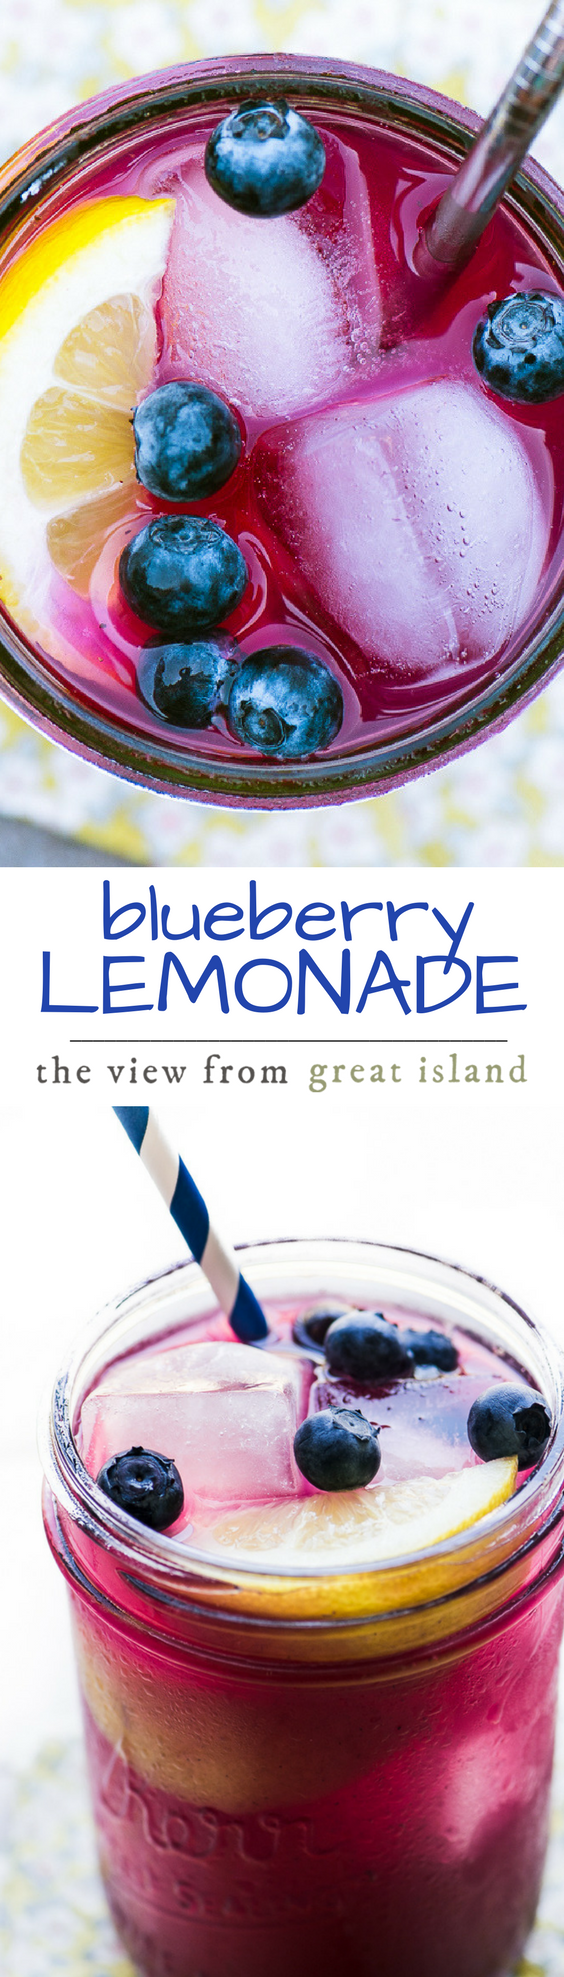 Blueberry Lemonade ~ skip the sugary soda and make a big pitcher of this all natural fruit drink ~ #lemonade #blueberries #fruitdrink #summer #beverage #berries #kidsdrink #healthy #naturalsoda #fruitbeverage